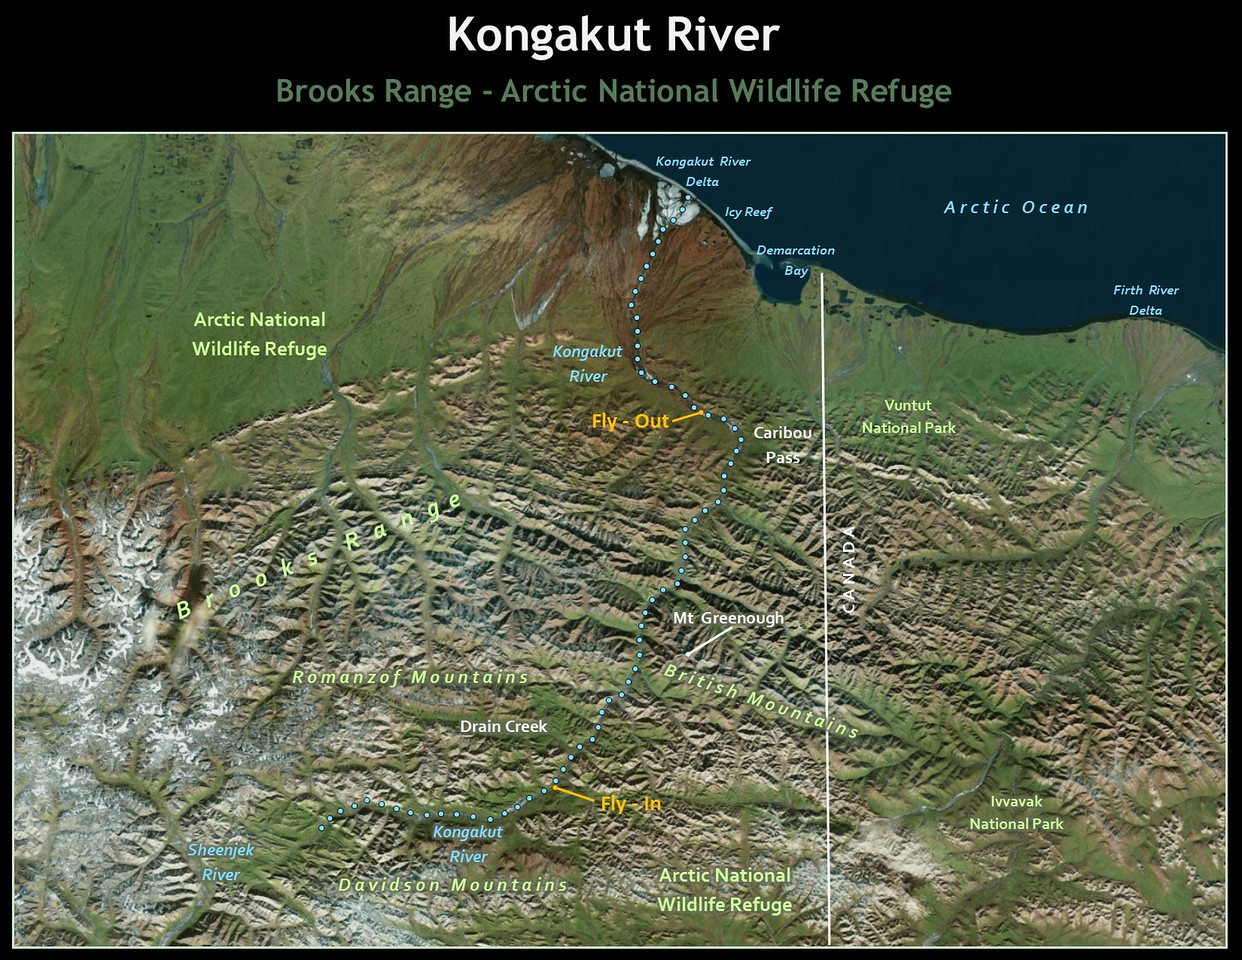 We floated a 50 mile section of the river from a tundra air strip south of Drain Creek  to a river bar downstream of Caribou Pass.